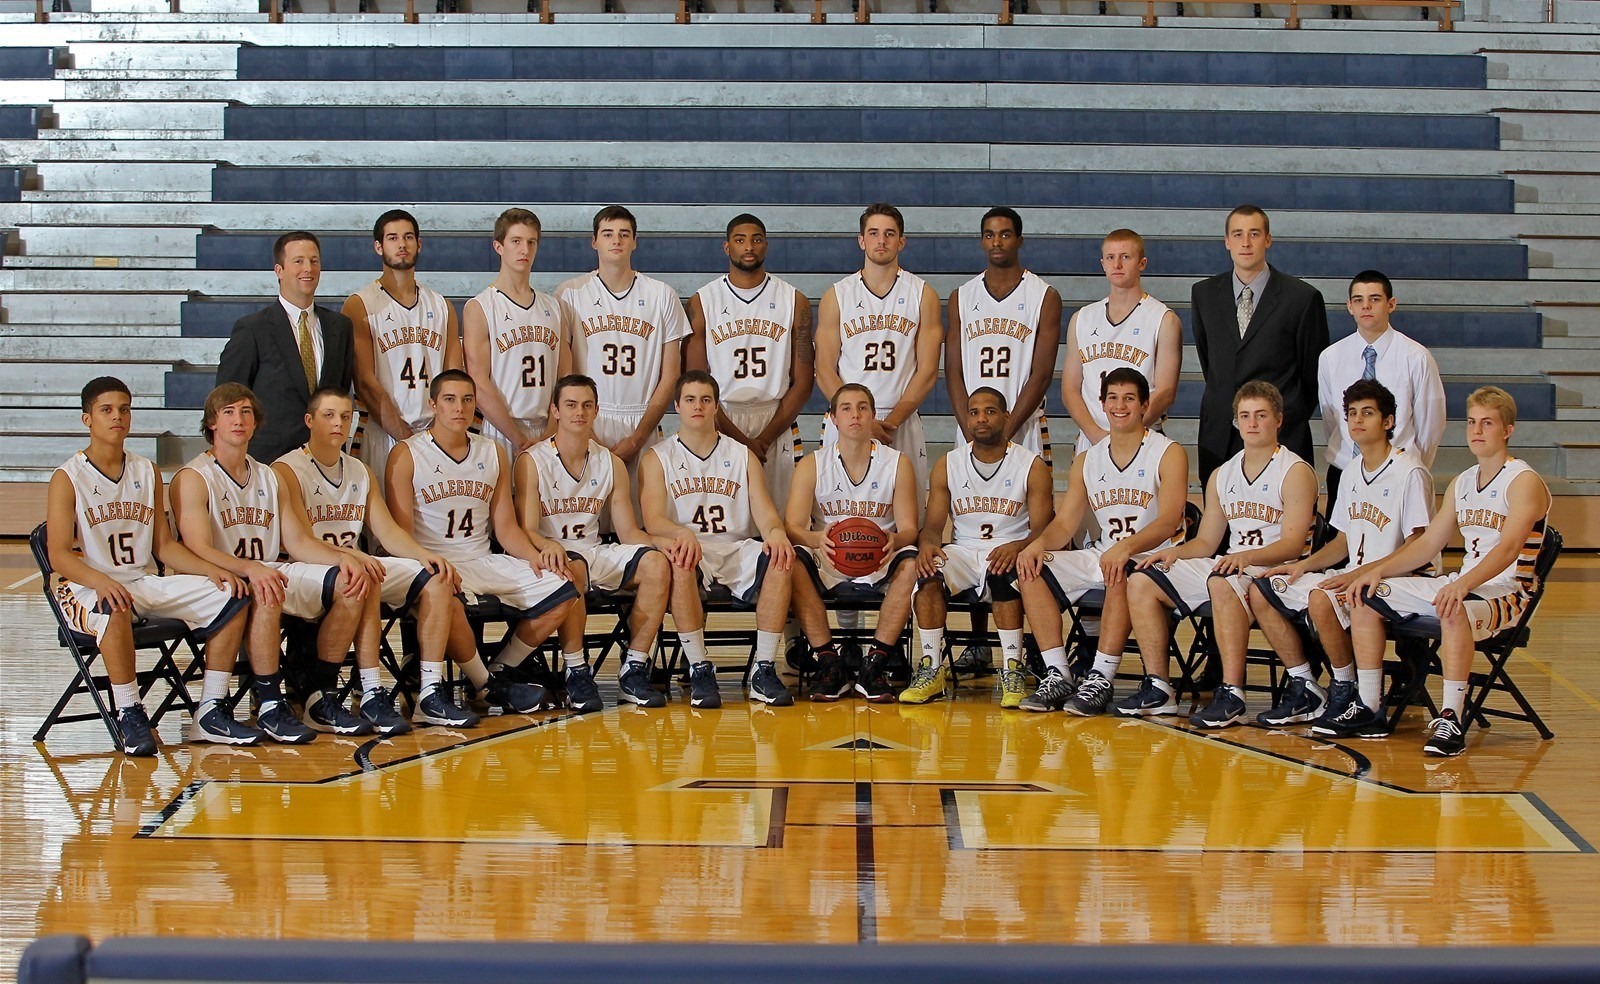 2013-14 Men's Basketball Roster - Allegheny College Athletics